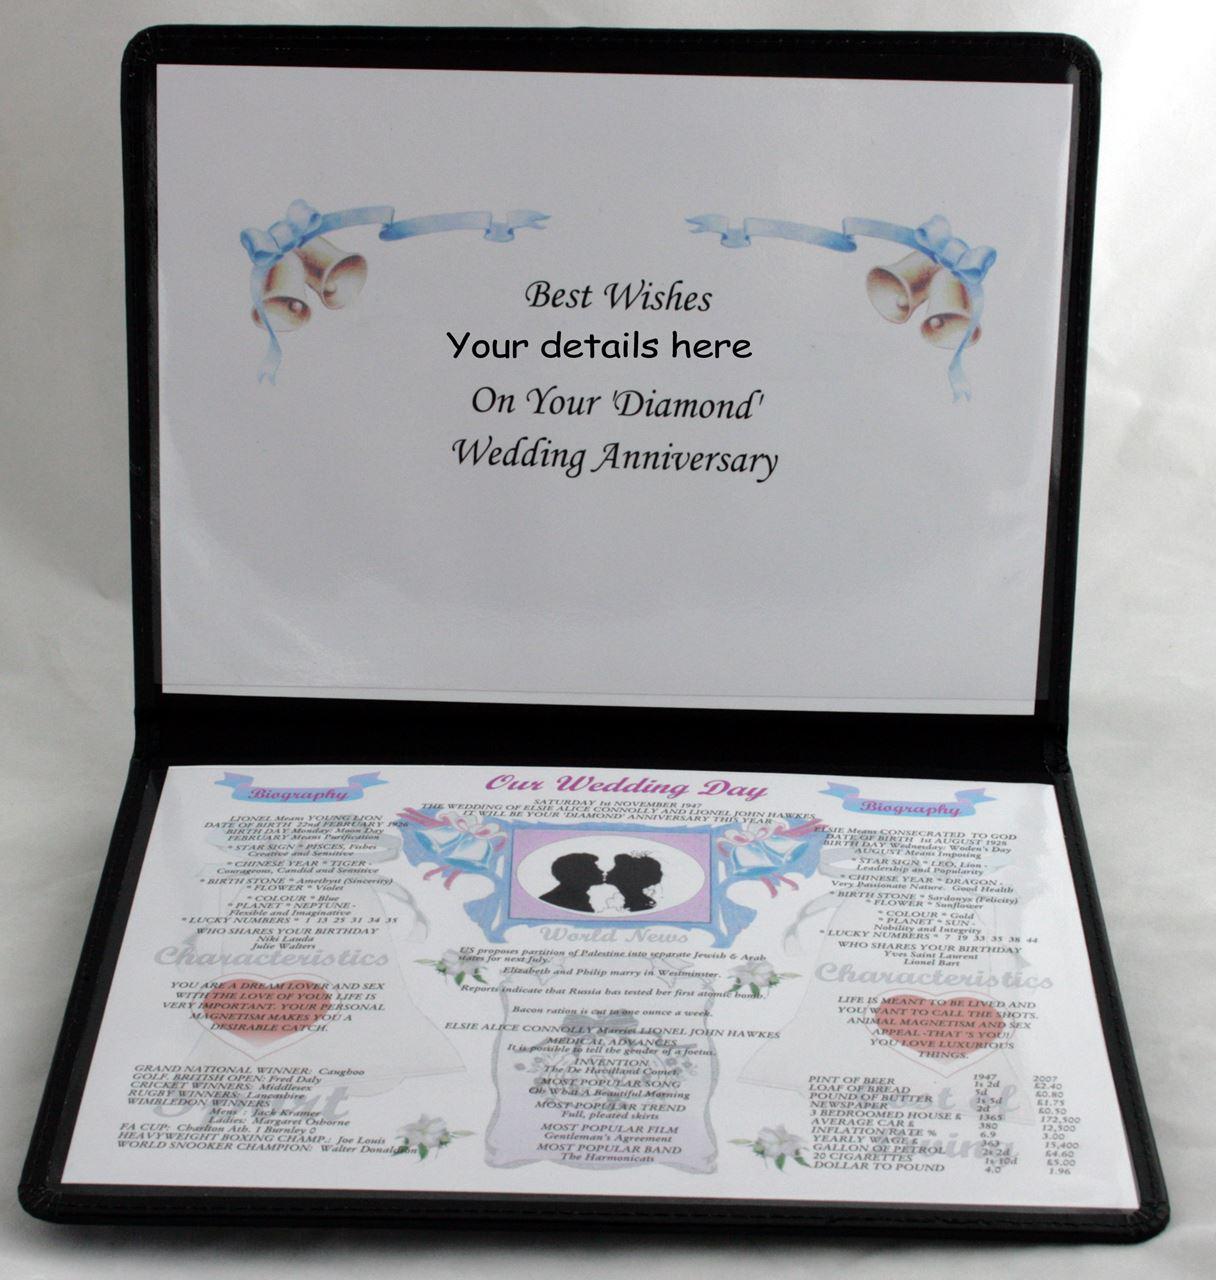 Wedding Anniversary Gifts By Year Chart: Our Wedding Day Commemorative Chart